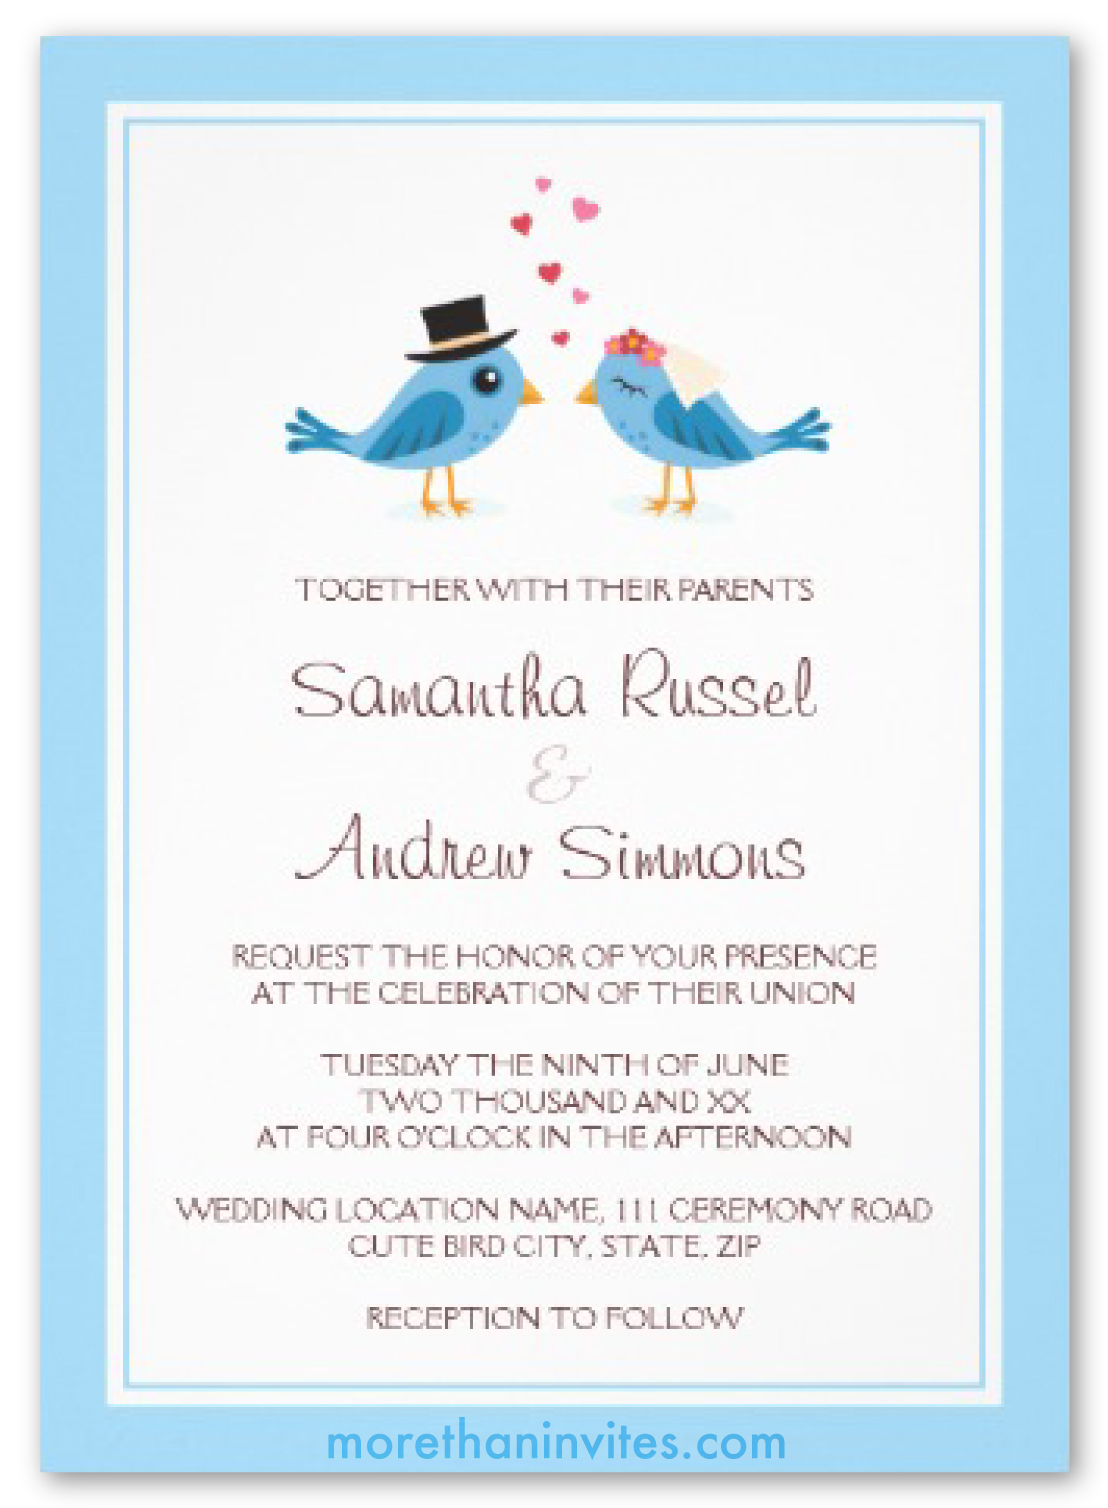 Cute Blue Bird Bride And Groom Wedding Invitation More